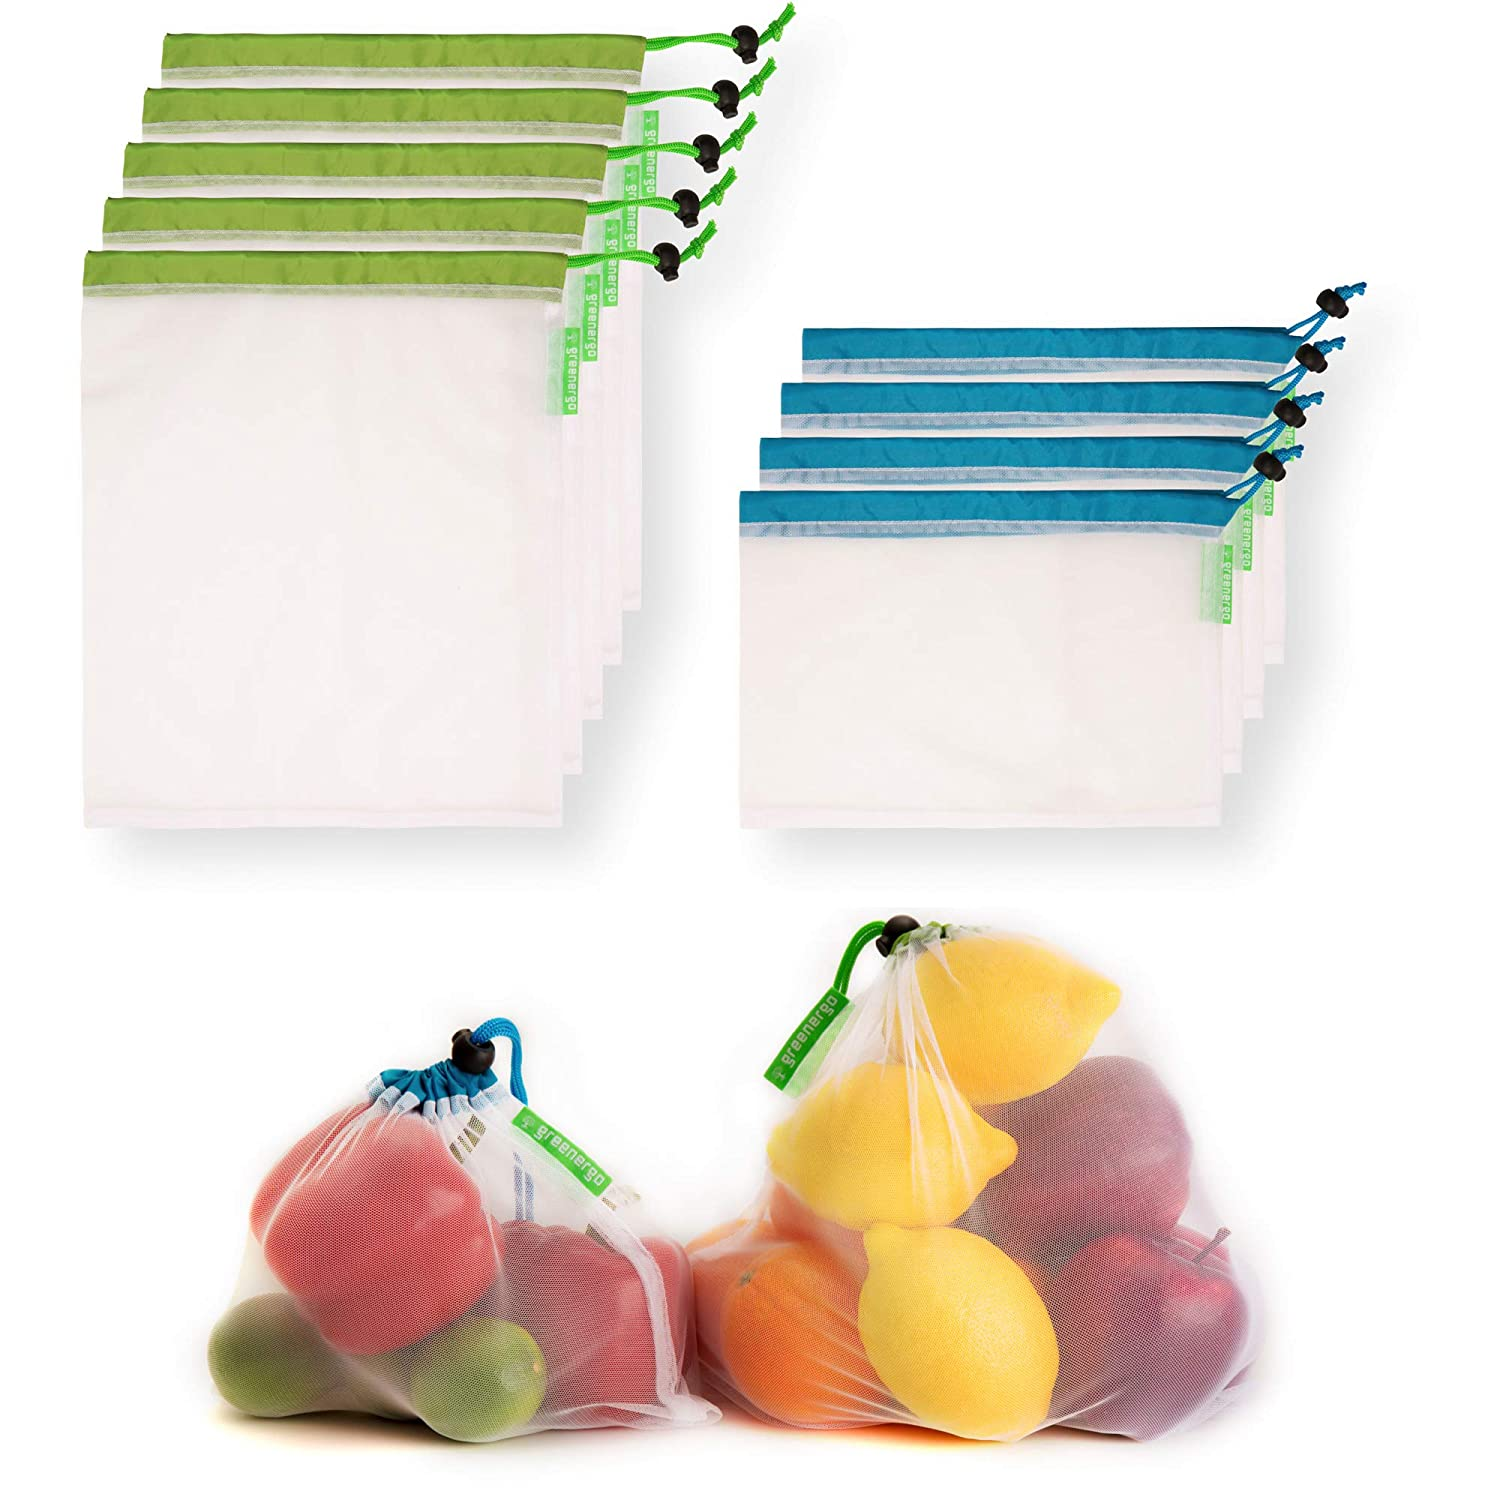 GreenerGo 9 Machine-Washable  Reusable Produce Bags  Eco-Friendly Mesh Bags Made from rPET - Fully Transparent with Drawstring - for Fruits  Veggies and More - Barcode Readable - Zero-Waste Products